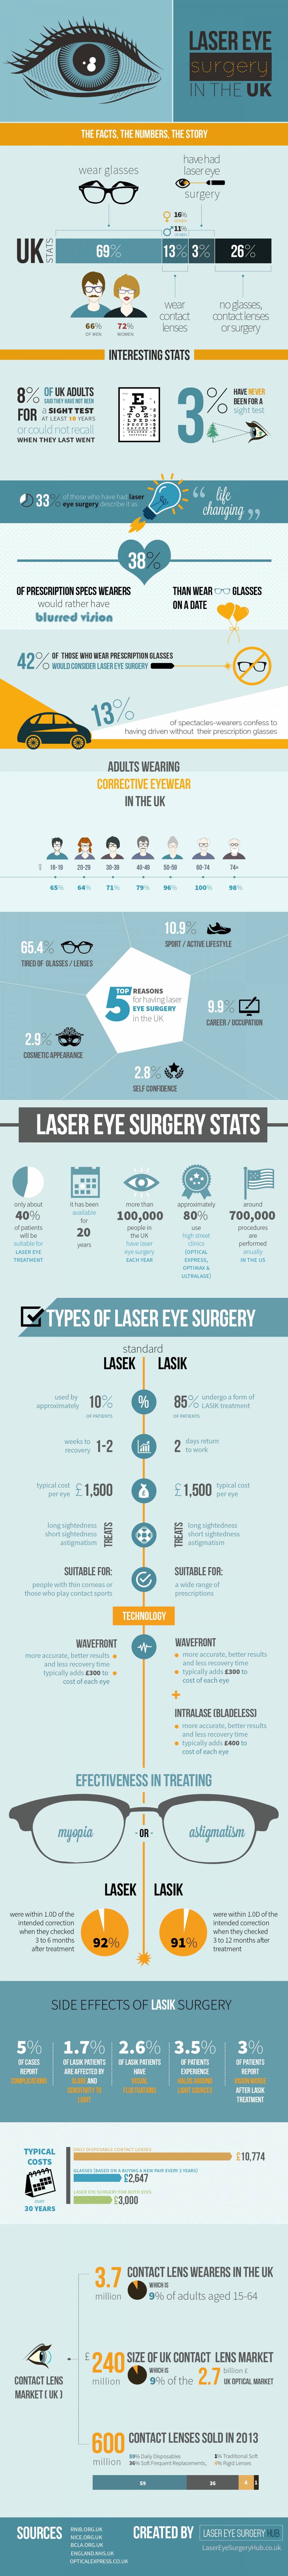 Laser Eye Surgery In The UK Infographic laser eye surgery in the uk 549309edba253 w1500